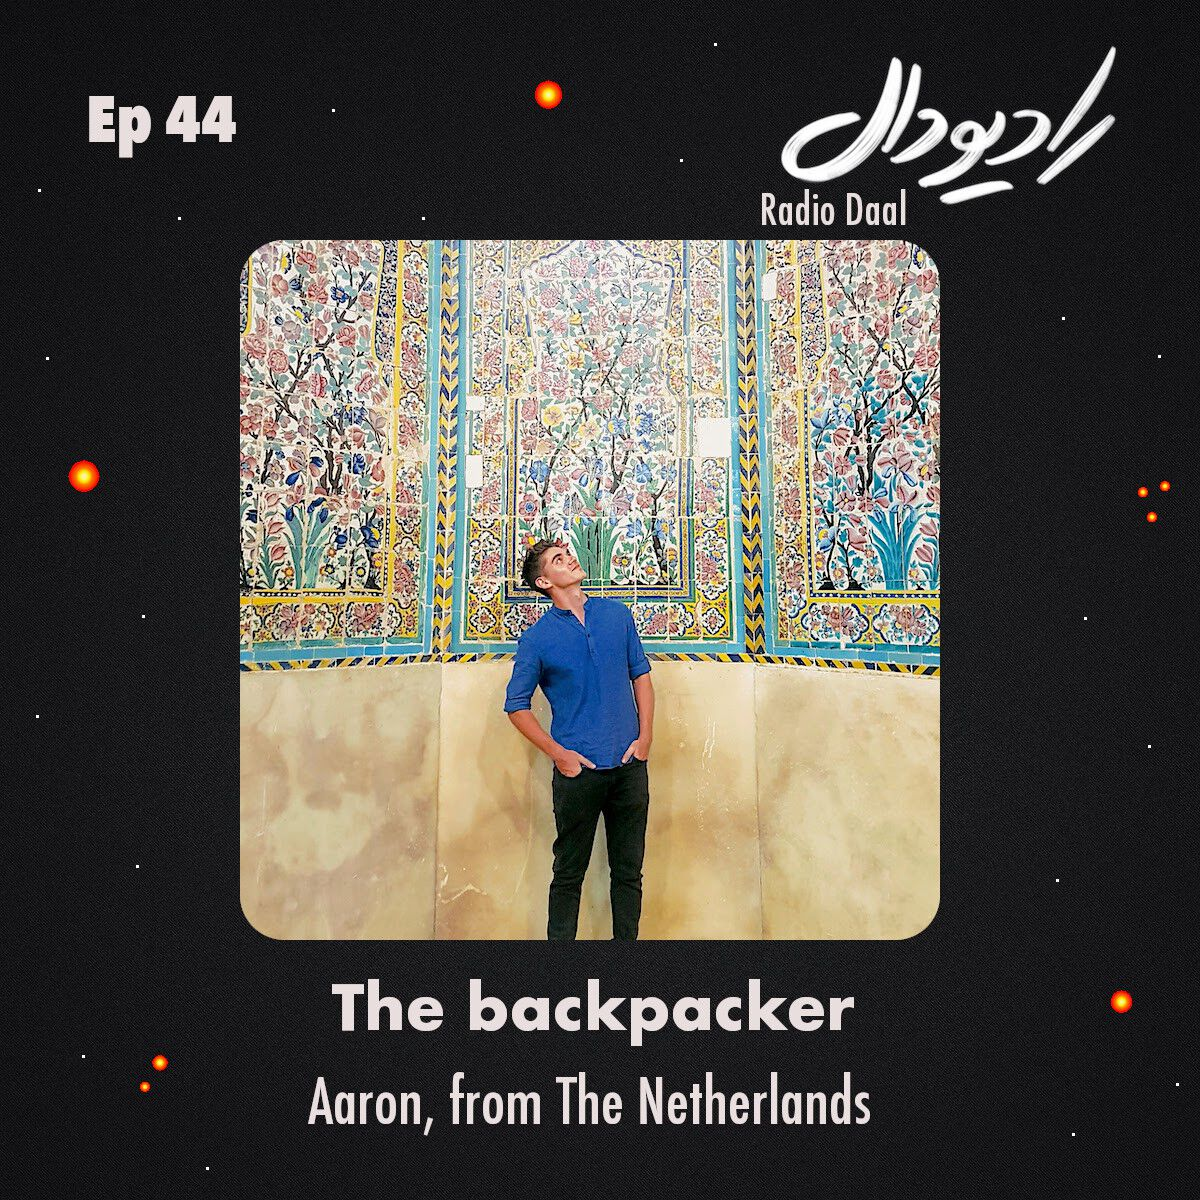 The Backpacker, with Aaron from The Netherlands